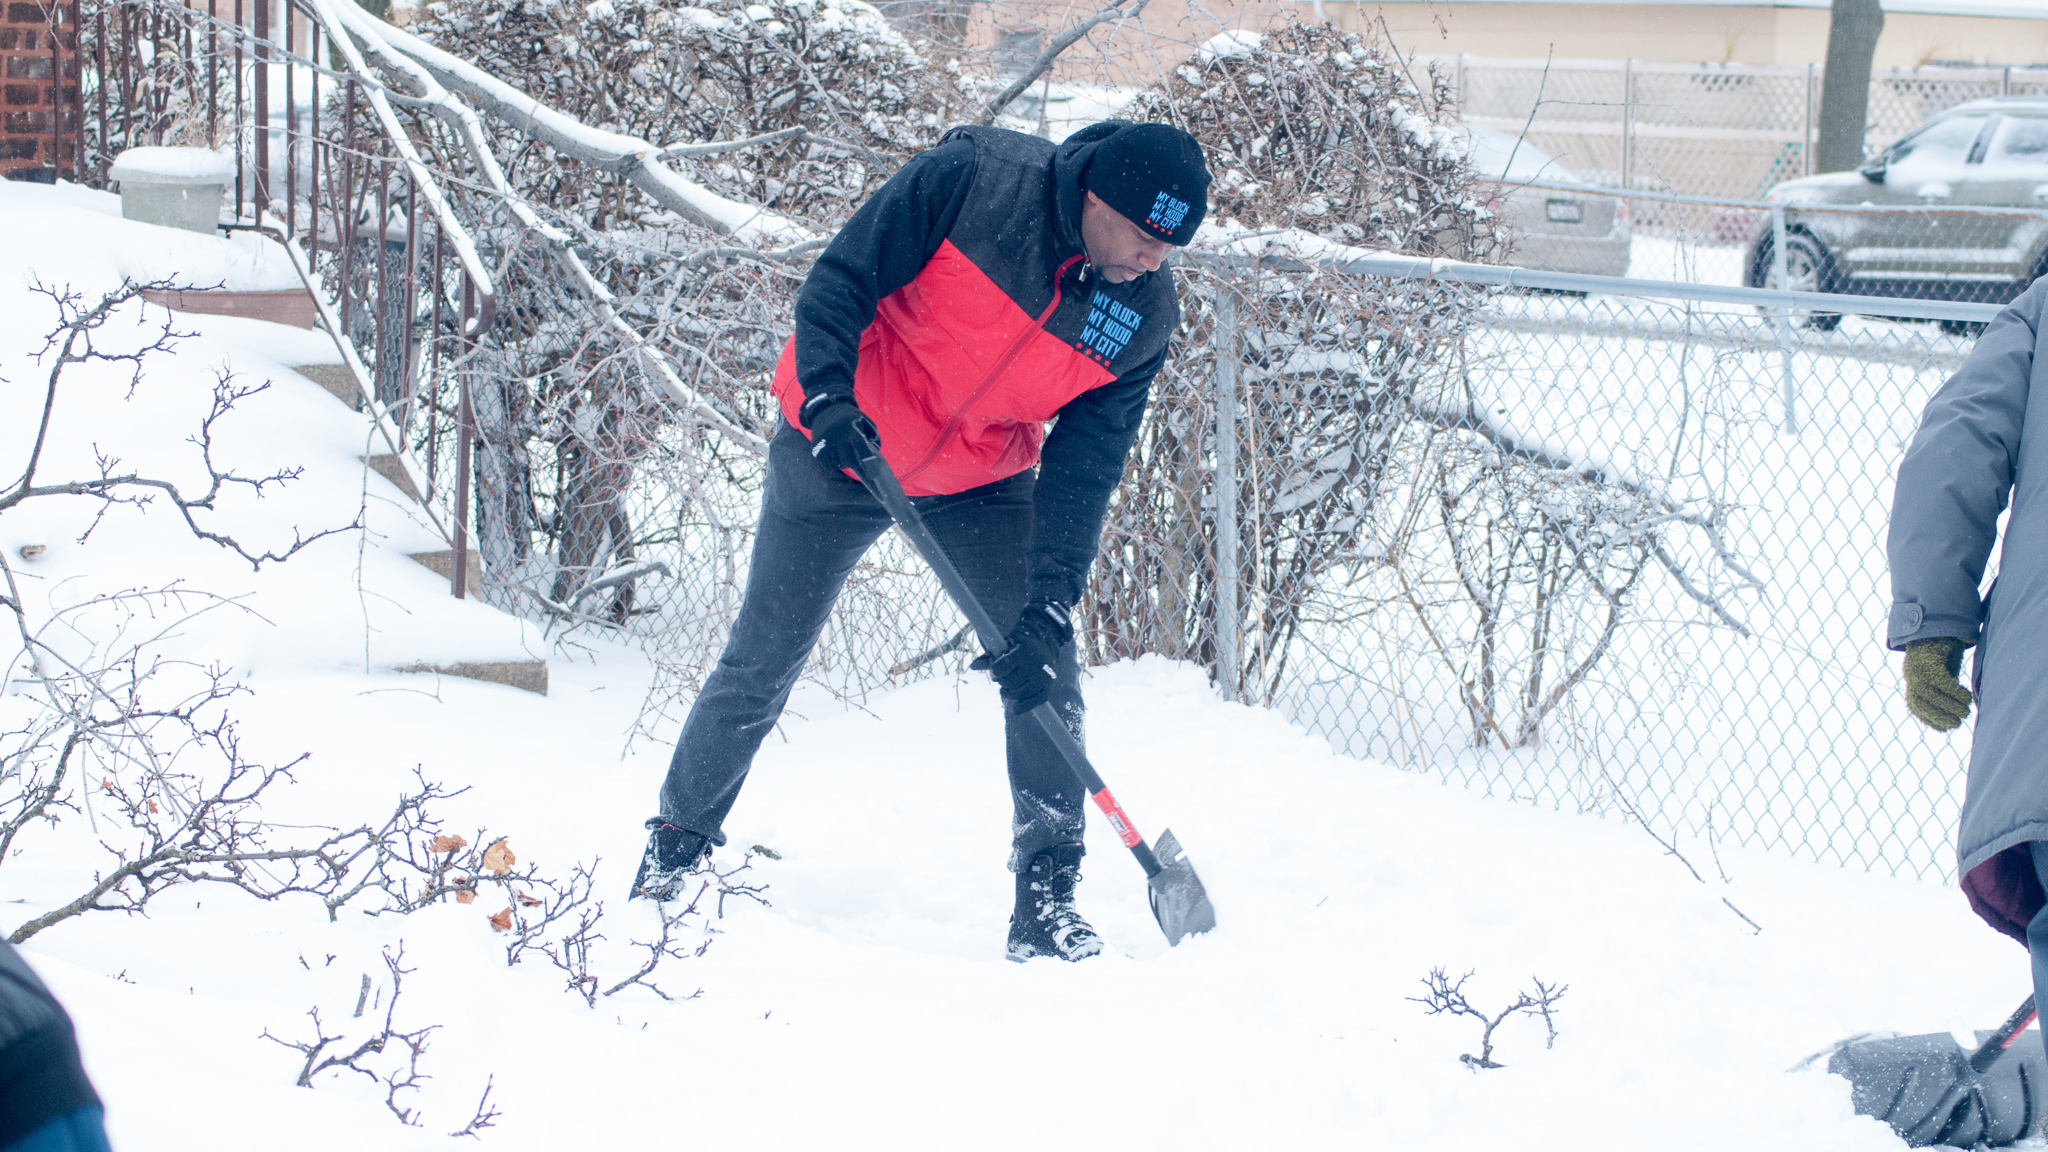 Washington Post - A Chicago man asked for 10 volunteers to help his elderly neighbors in a snowstorm. He couldn't believe the response.